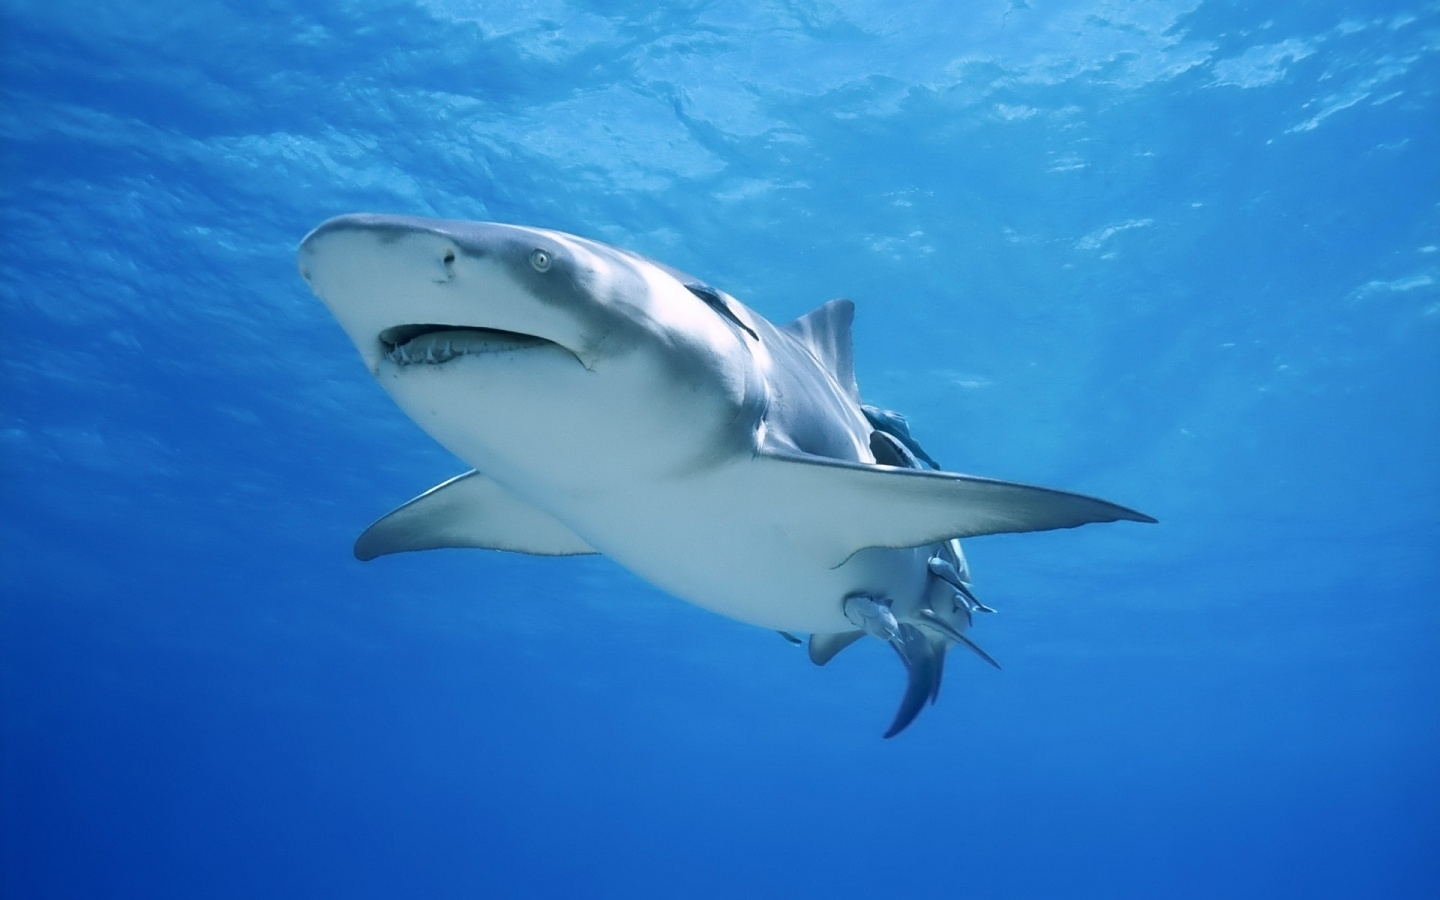 43548 download wallpaper Animals, Sharks screensavers and pictures for free